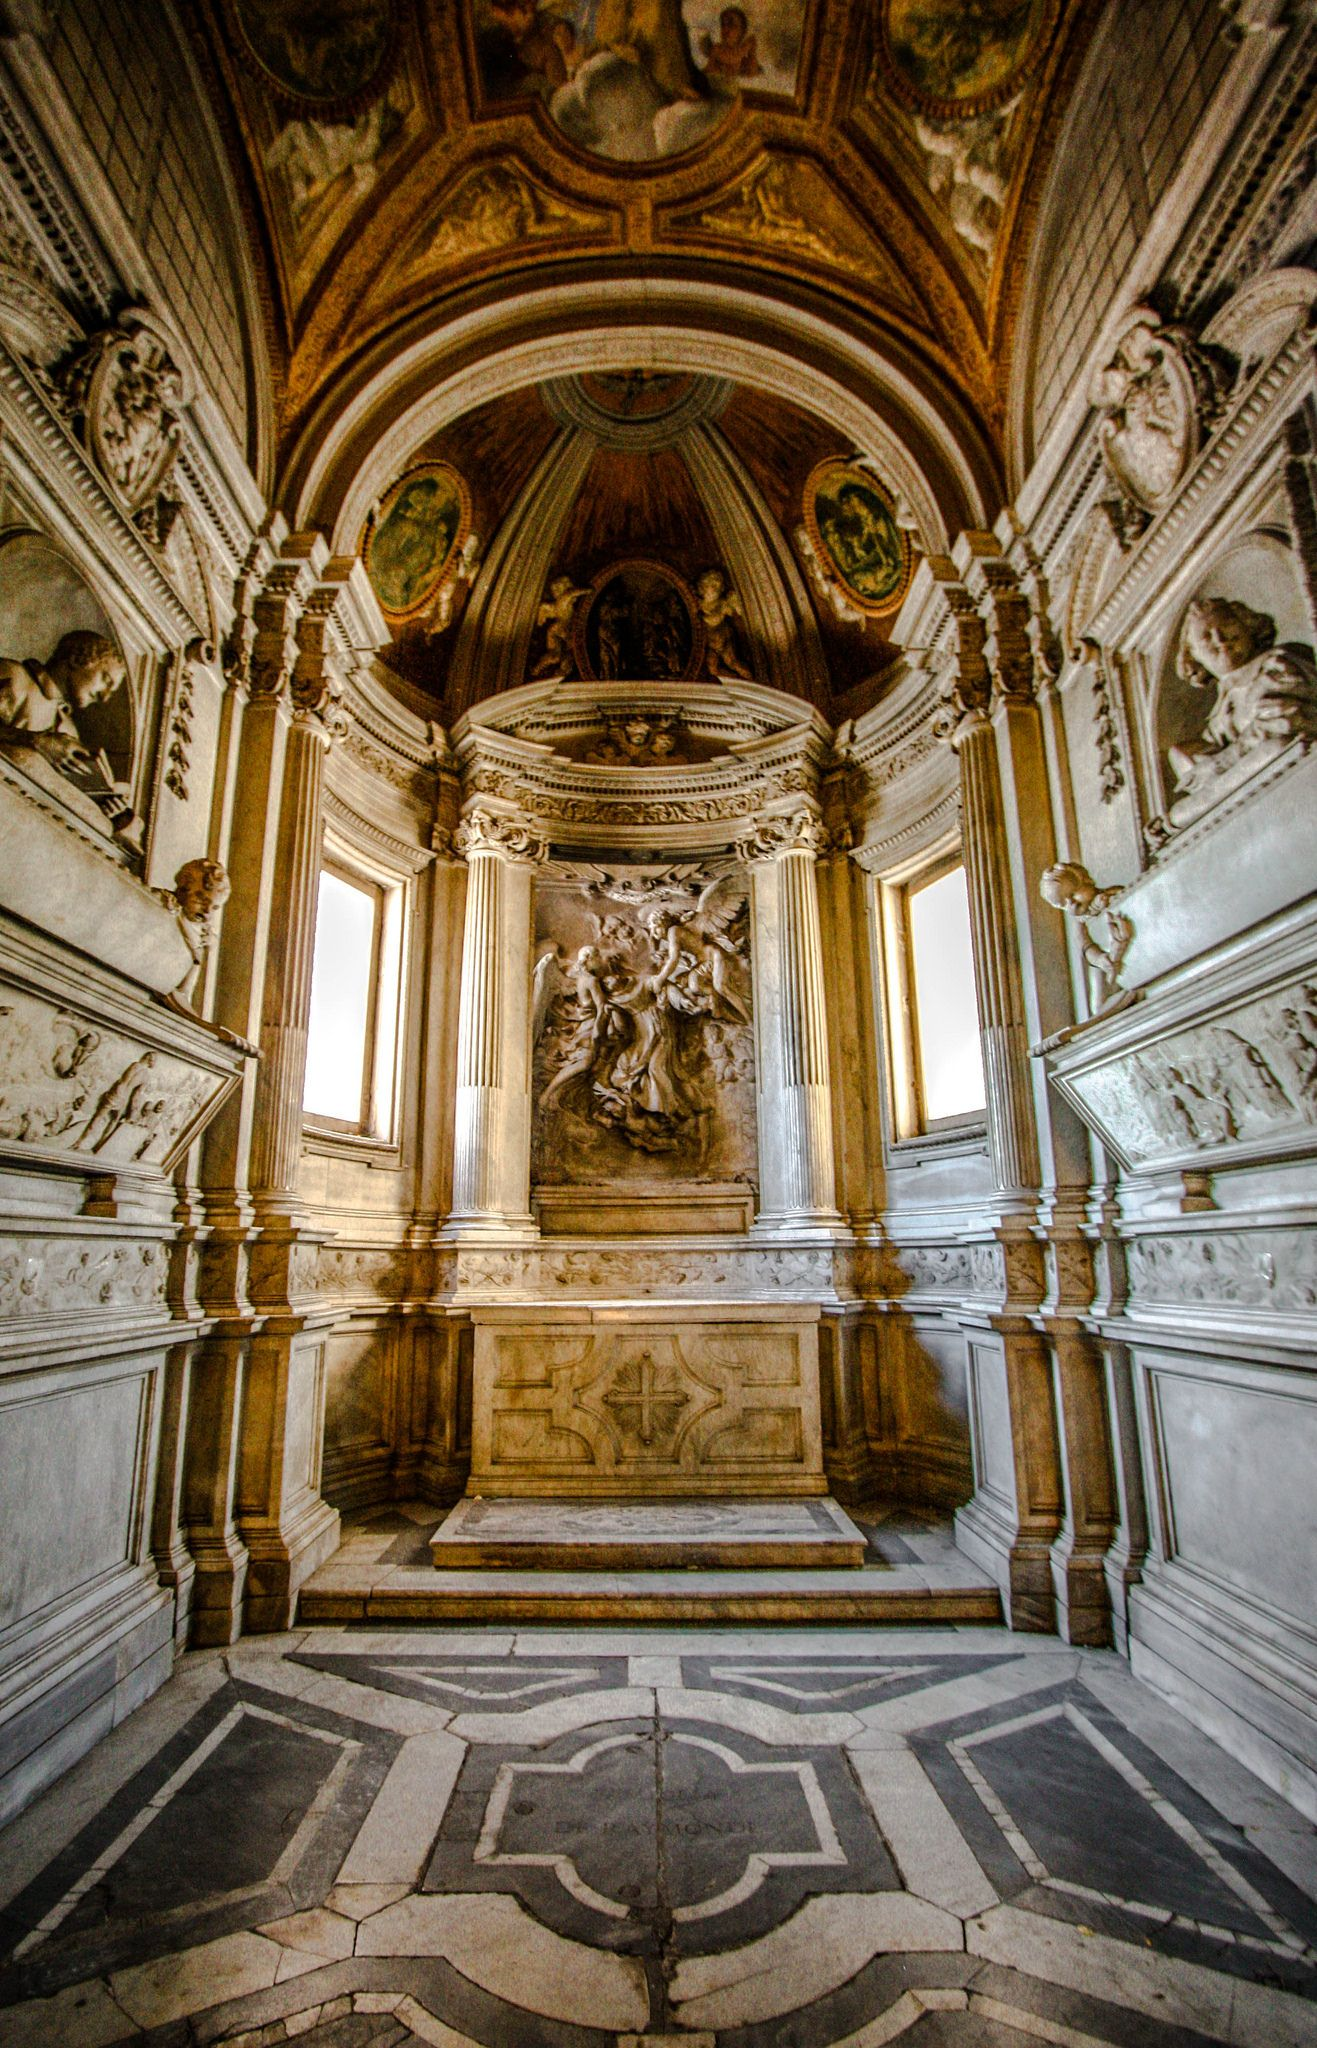 An early work by Bernini Интерьер